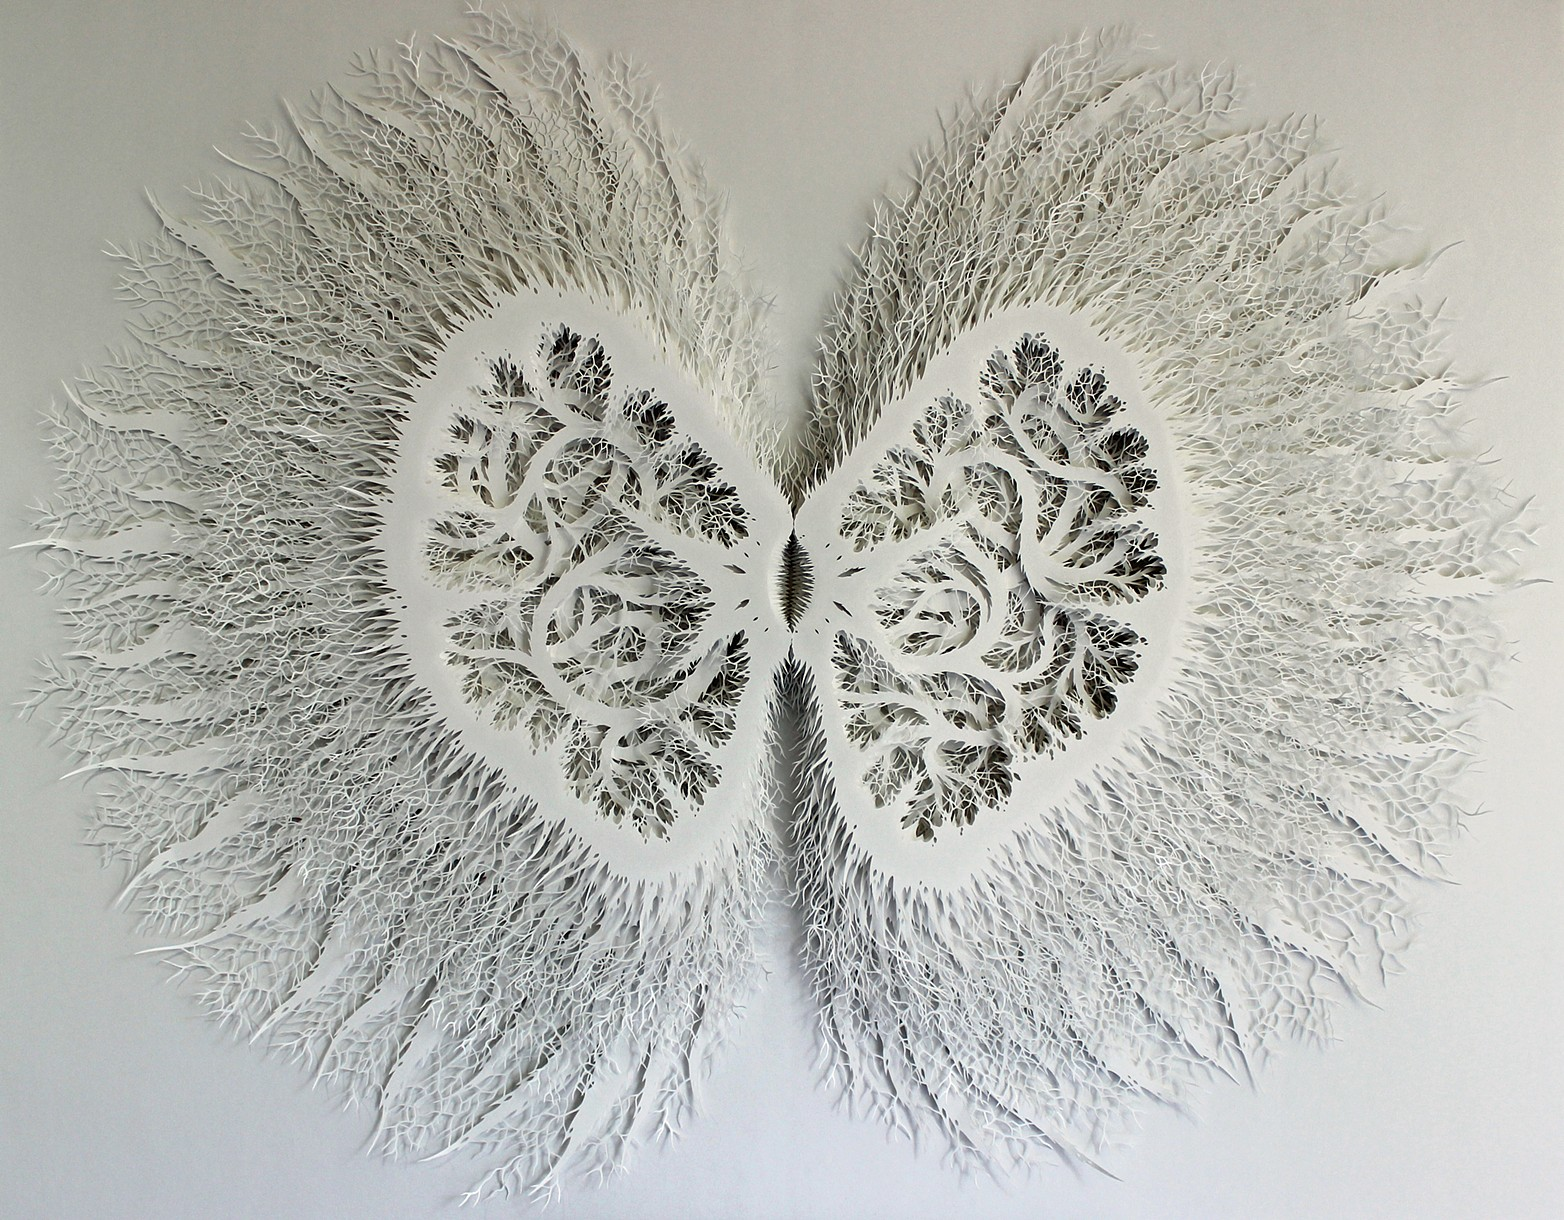 Hand cut layered paper relief sculpture